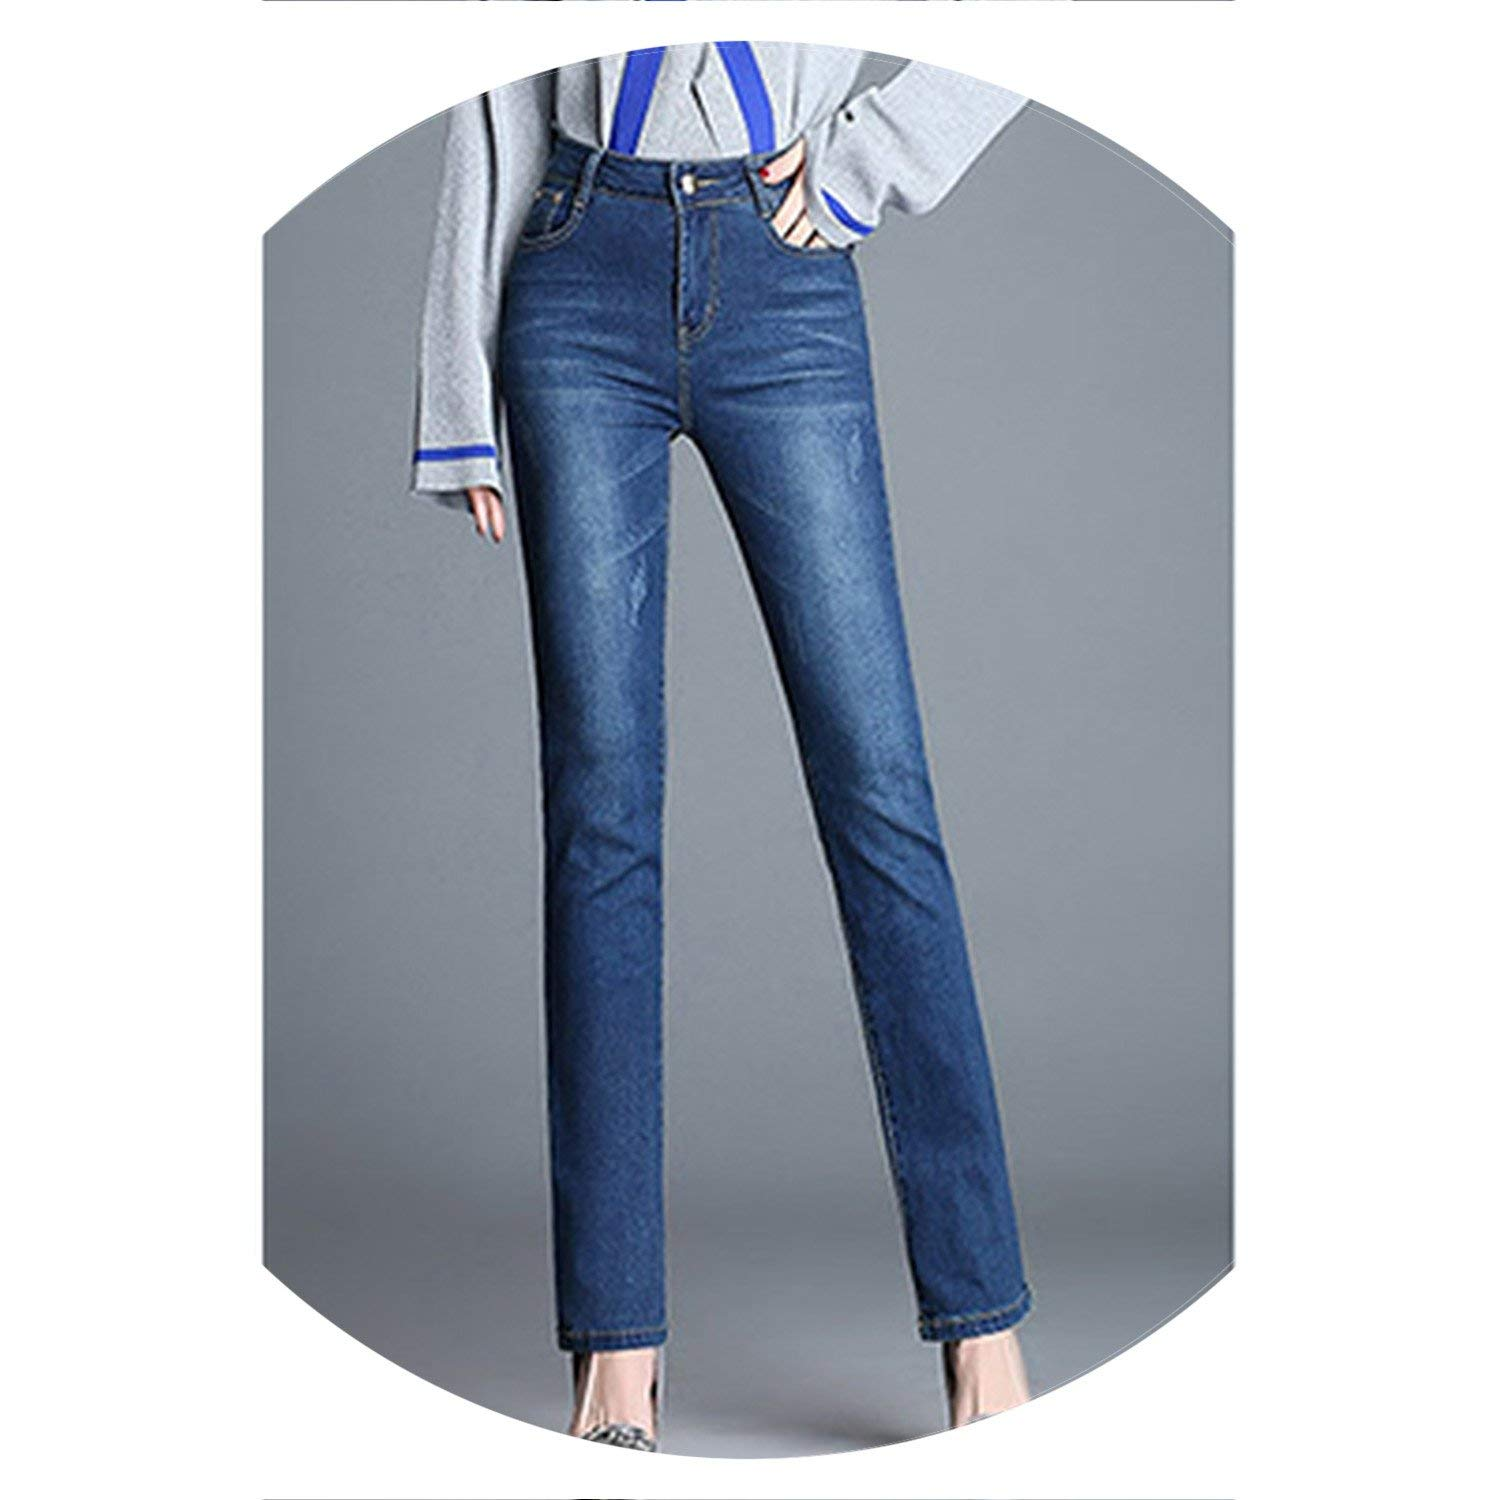 Dark bluee colorfulspace Classic with High Waist Denim Jeans for Women Vintage Slim Mom Style Jeans Woman Denim Pants